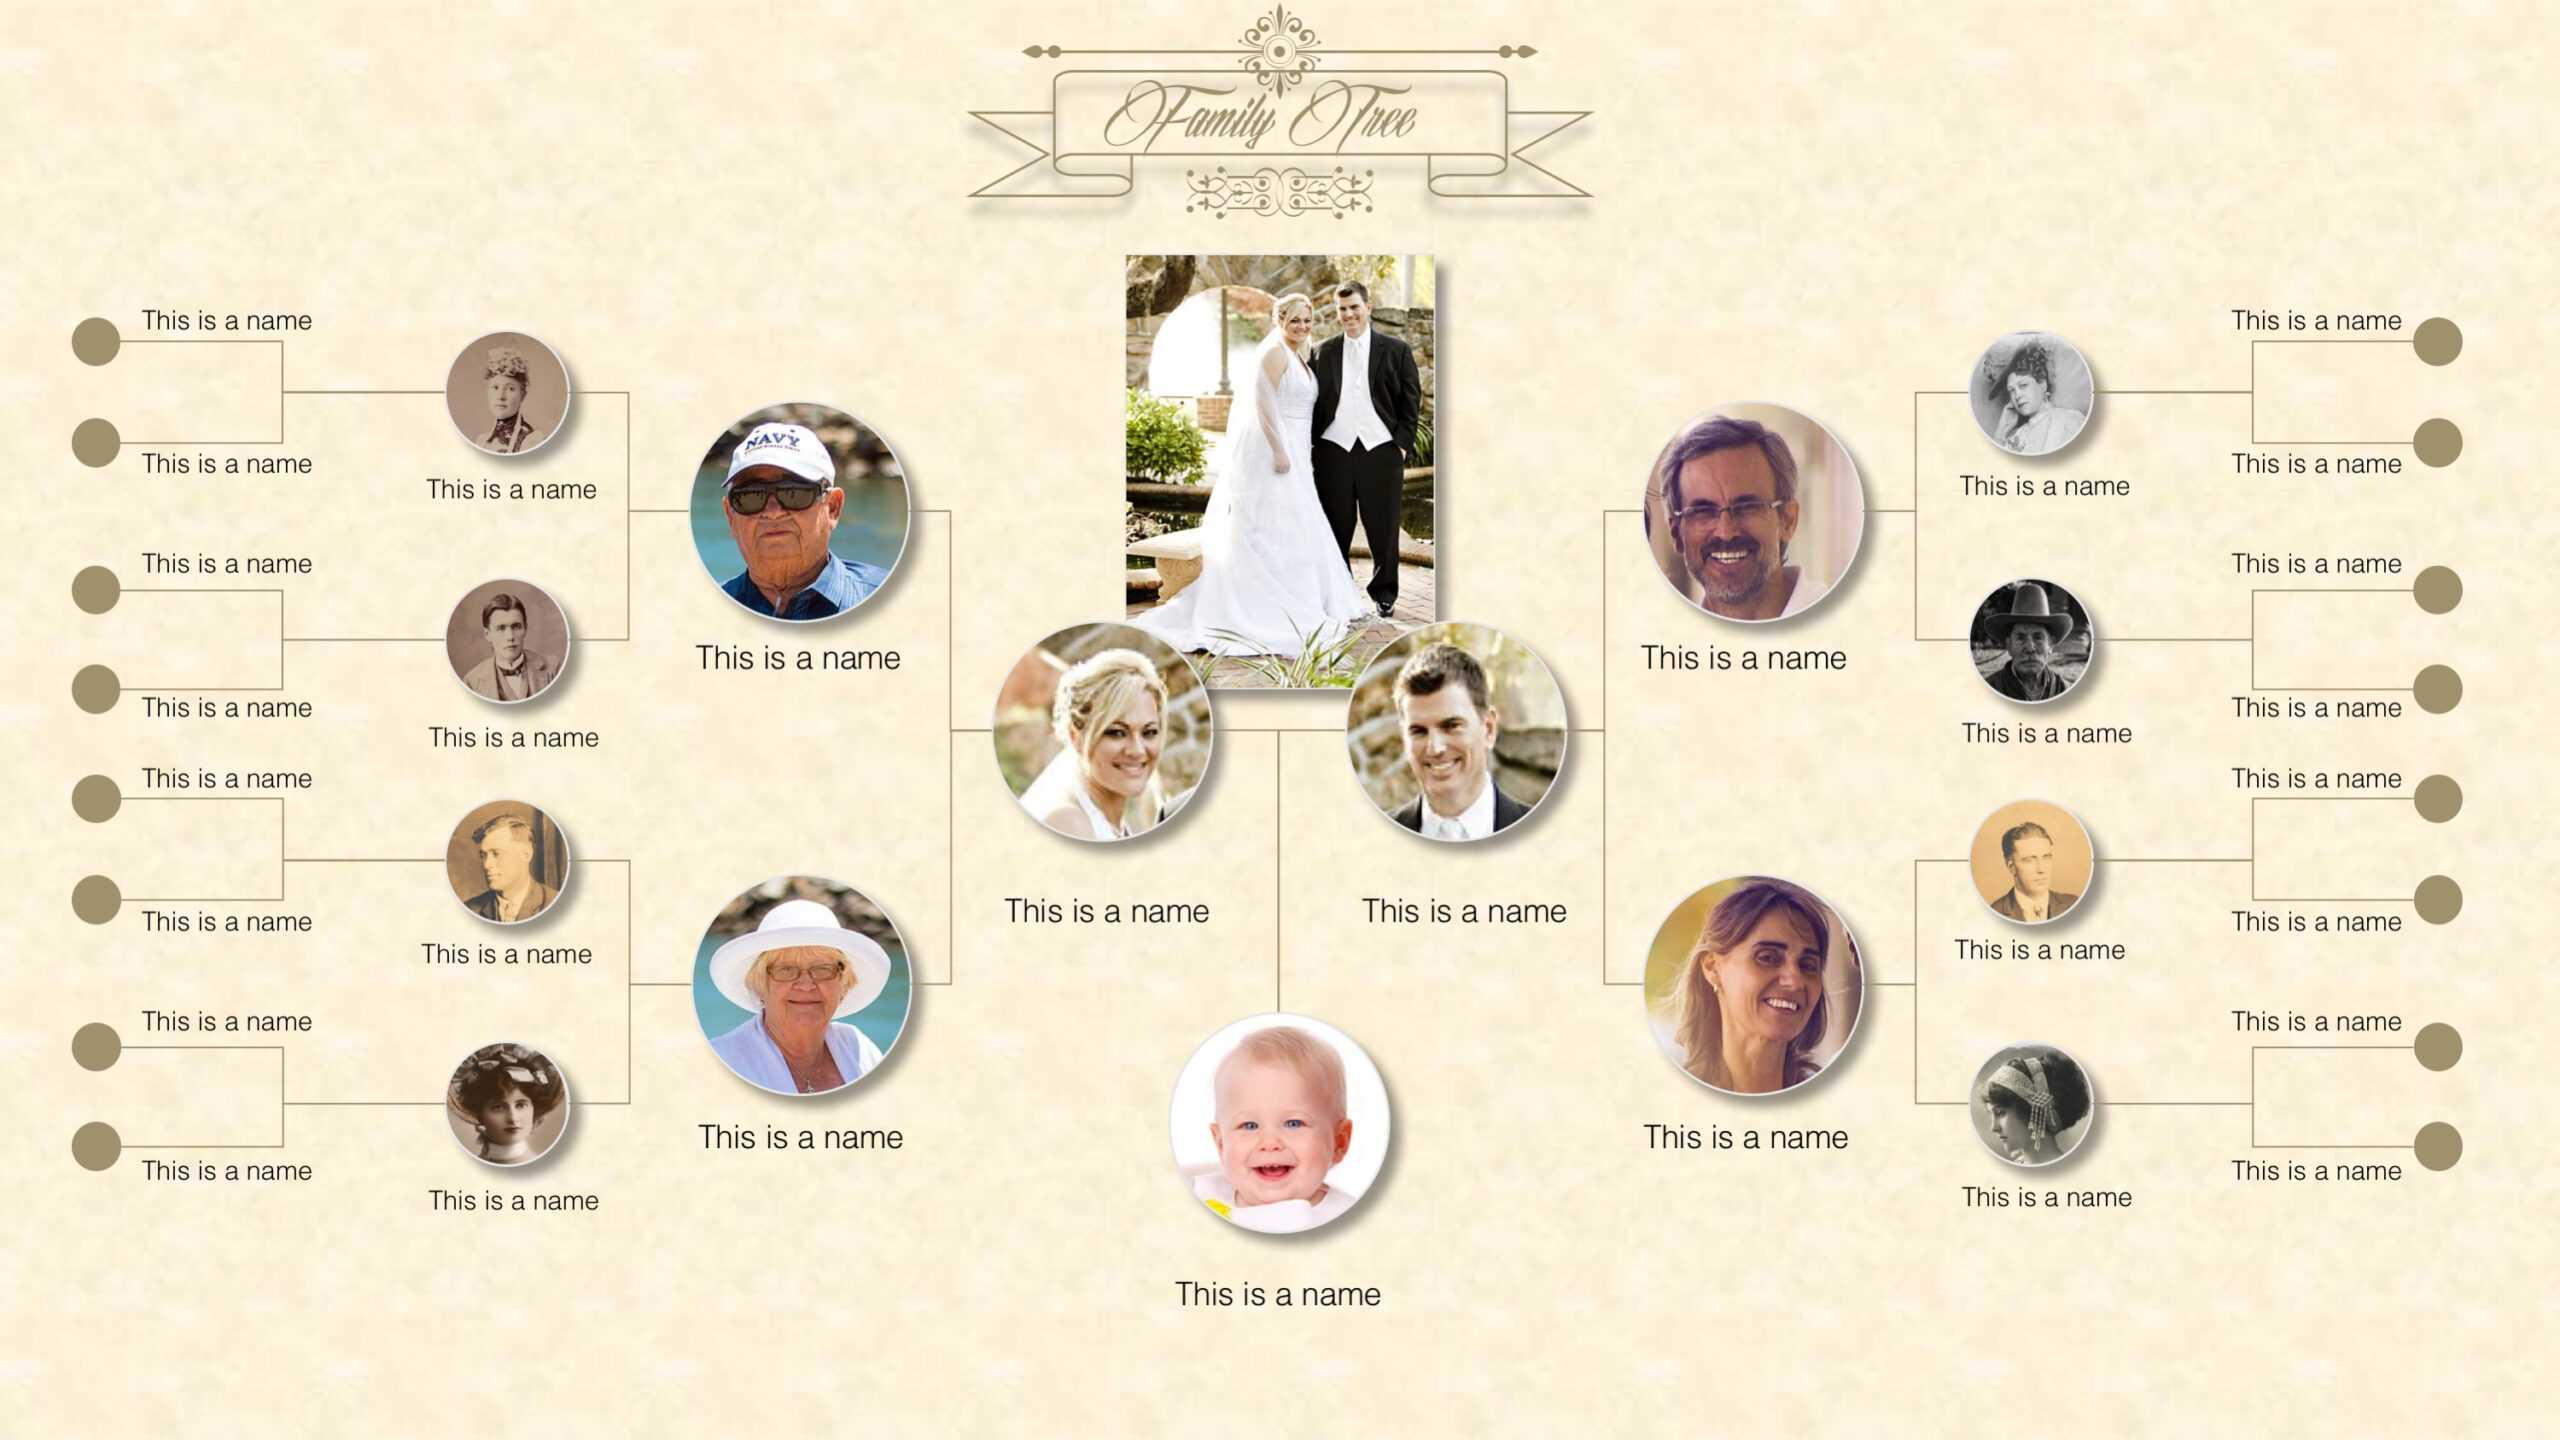 Family Tree Powerpoint Templates Within Powerpoint Genealogy Template